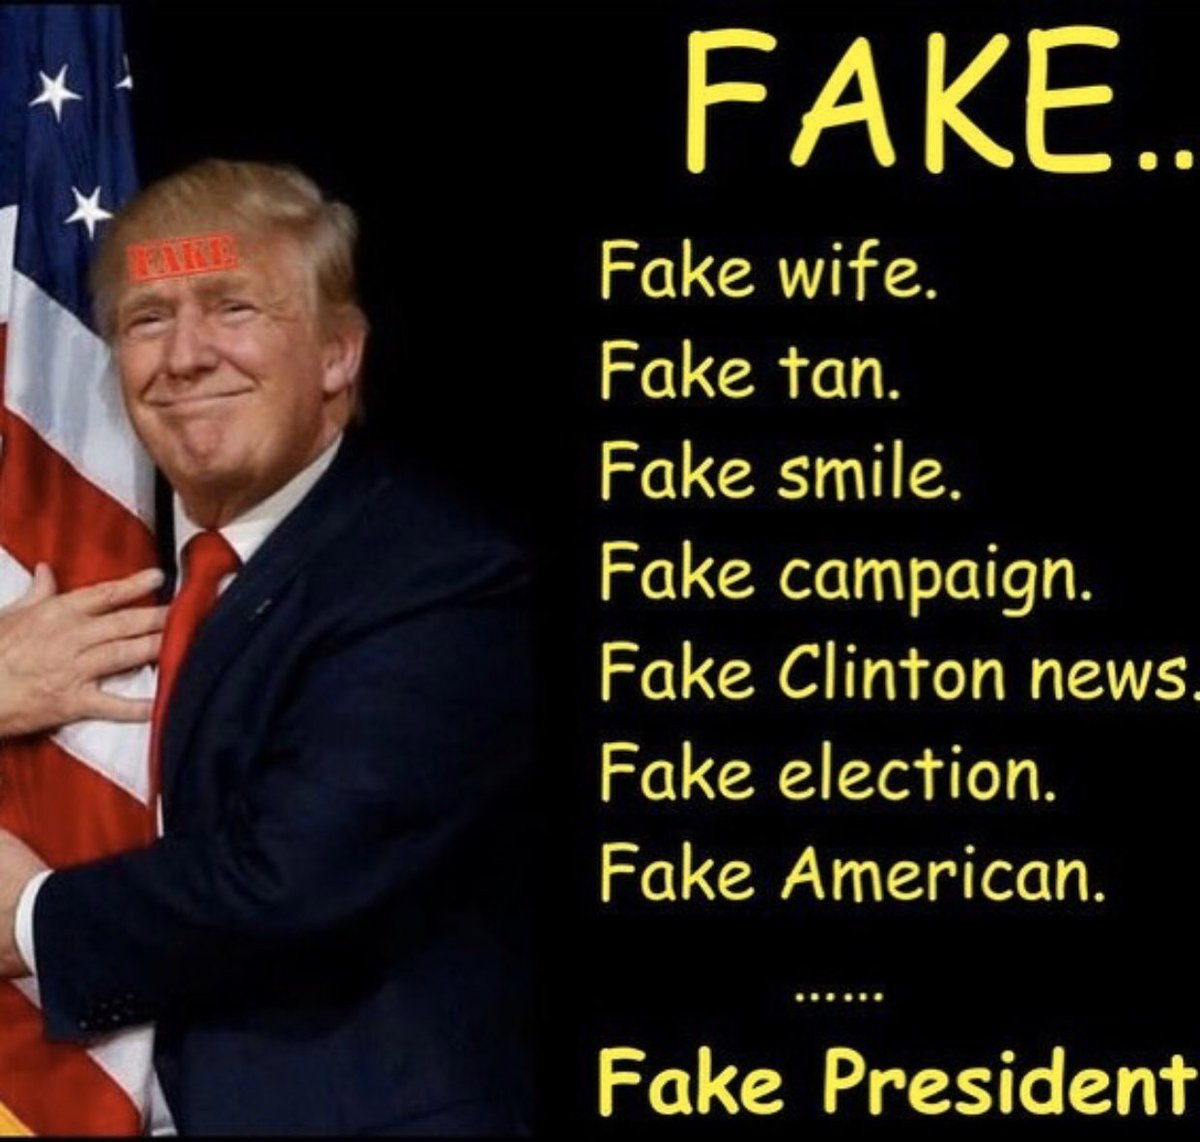 #ThingsFakeAF Everything #Trump says &Does, His #GOP, His Admin #BarrLies #SOTU2020 ,2016 Hacked Presidency,DT lost, #GOPCoverup & The lies they stand behind/DTs hair,smile,campaign wife etc. #FridayFeeling #FridayThoughts #FridayVibes #FridayMorning 👋🏾👋🏾